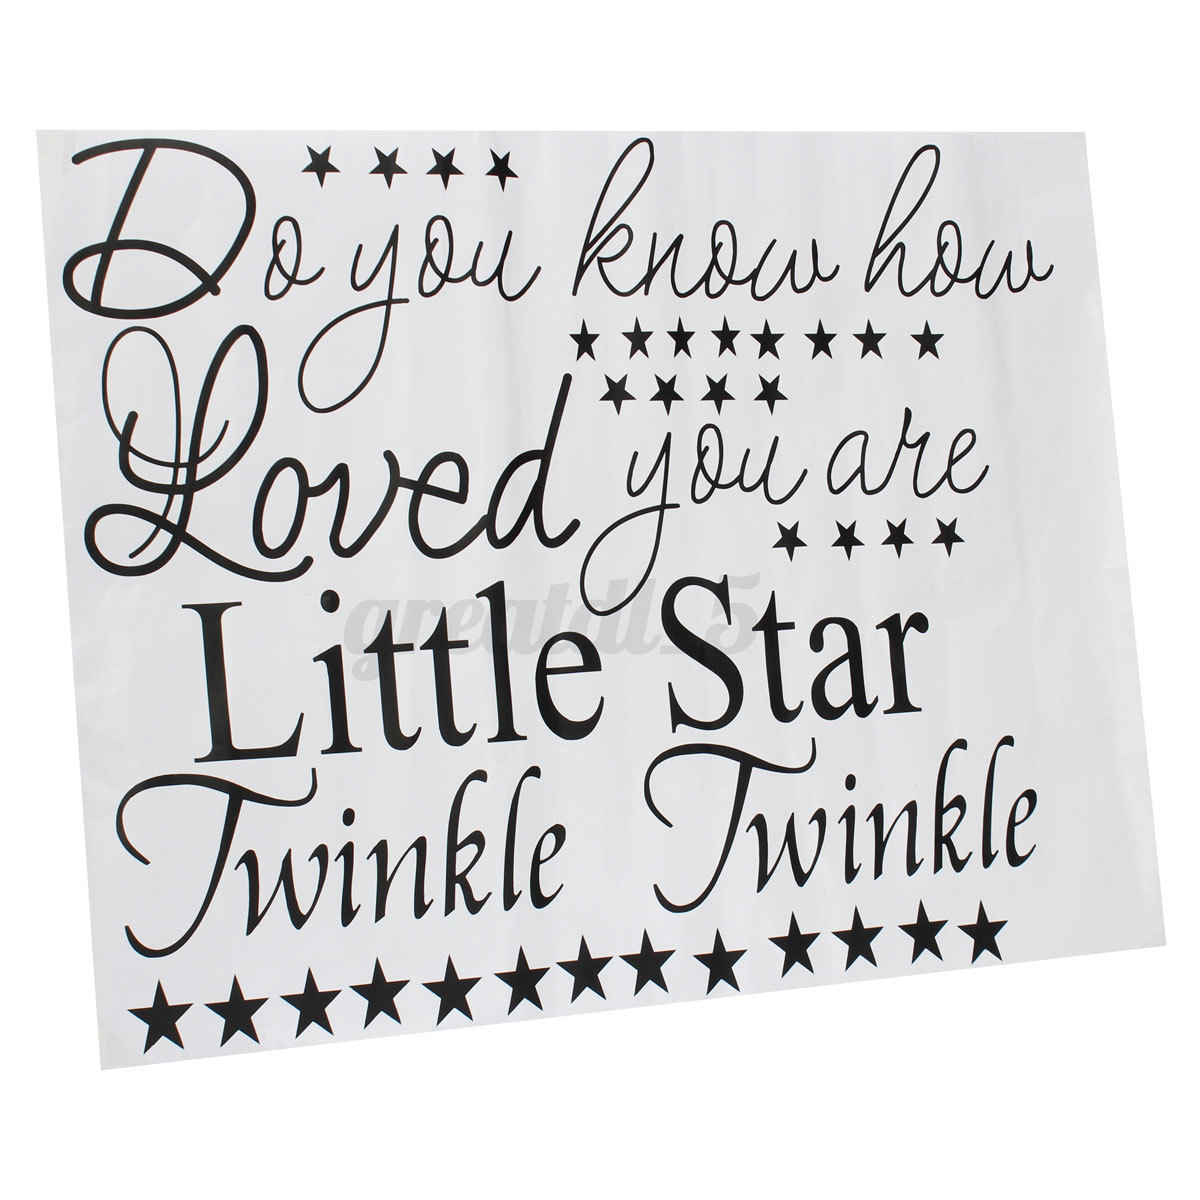 Little star sticker wall quote art decals removable words mural ebay